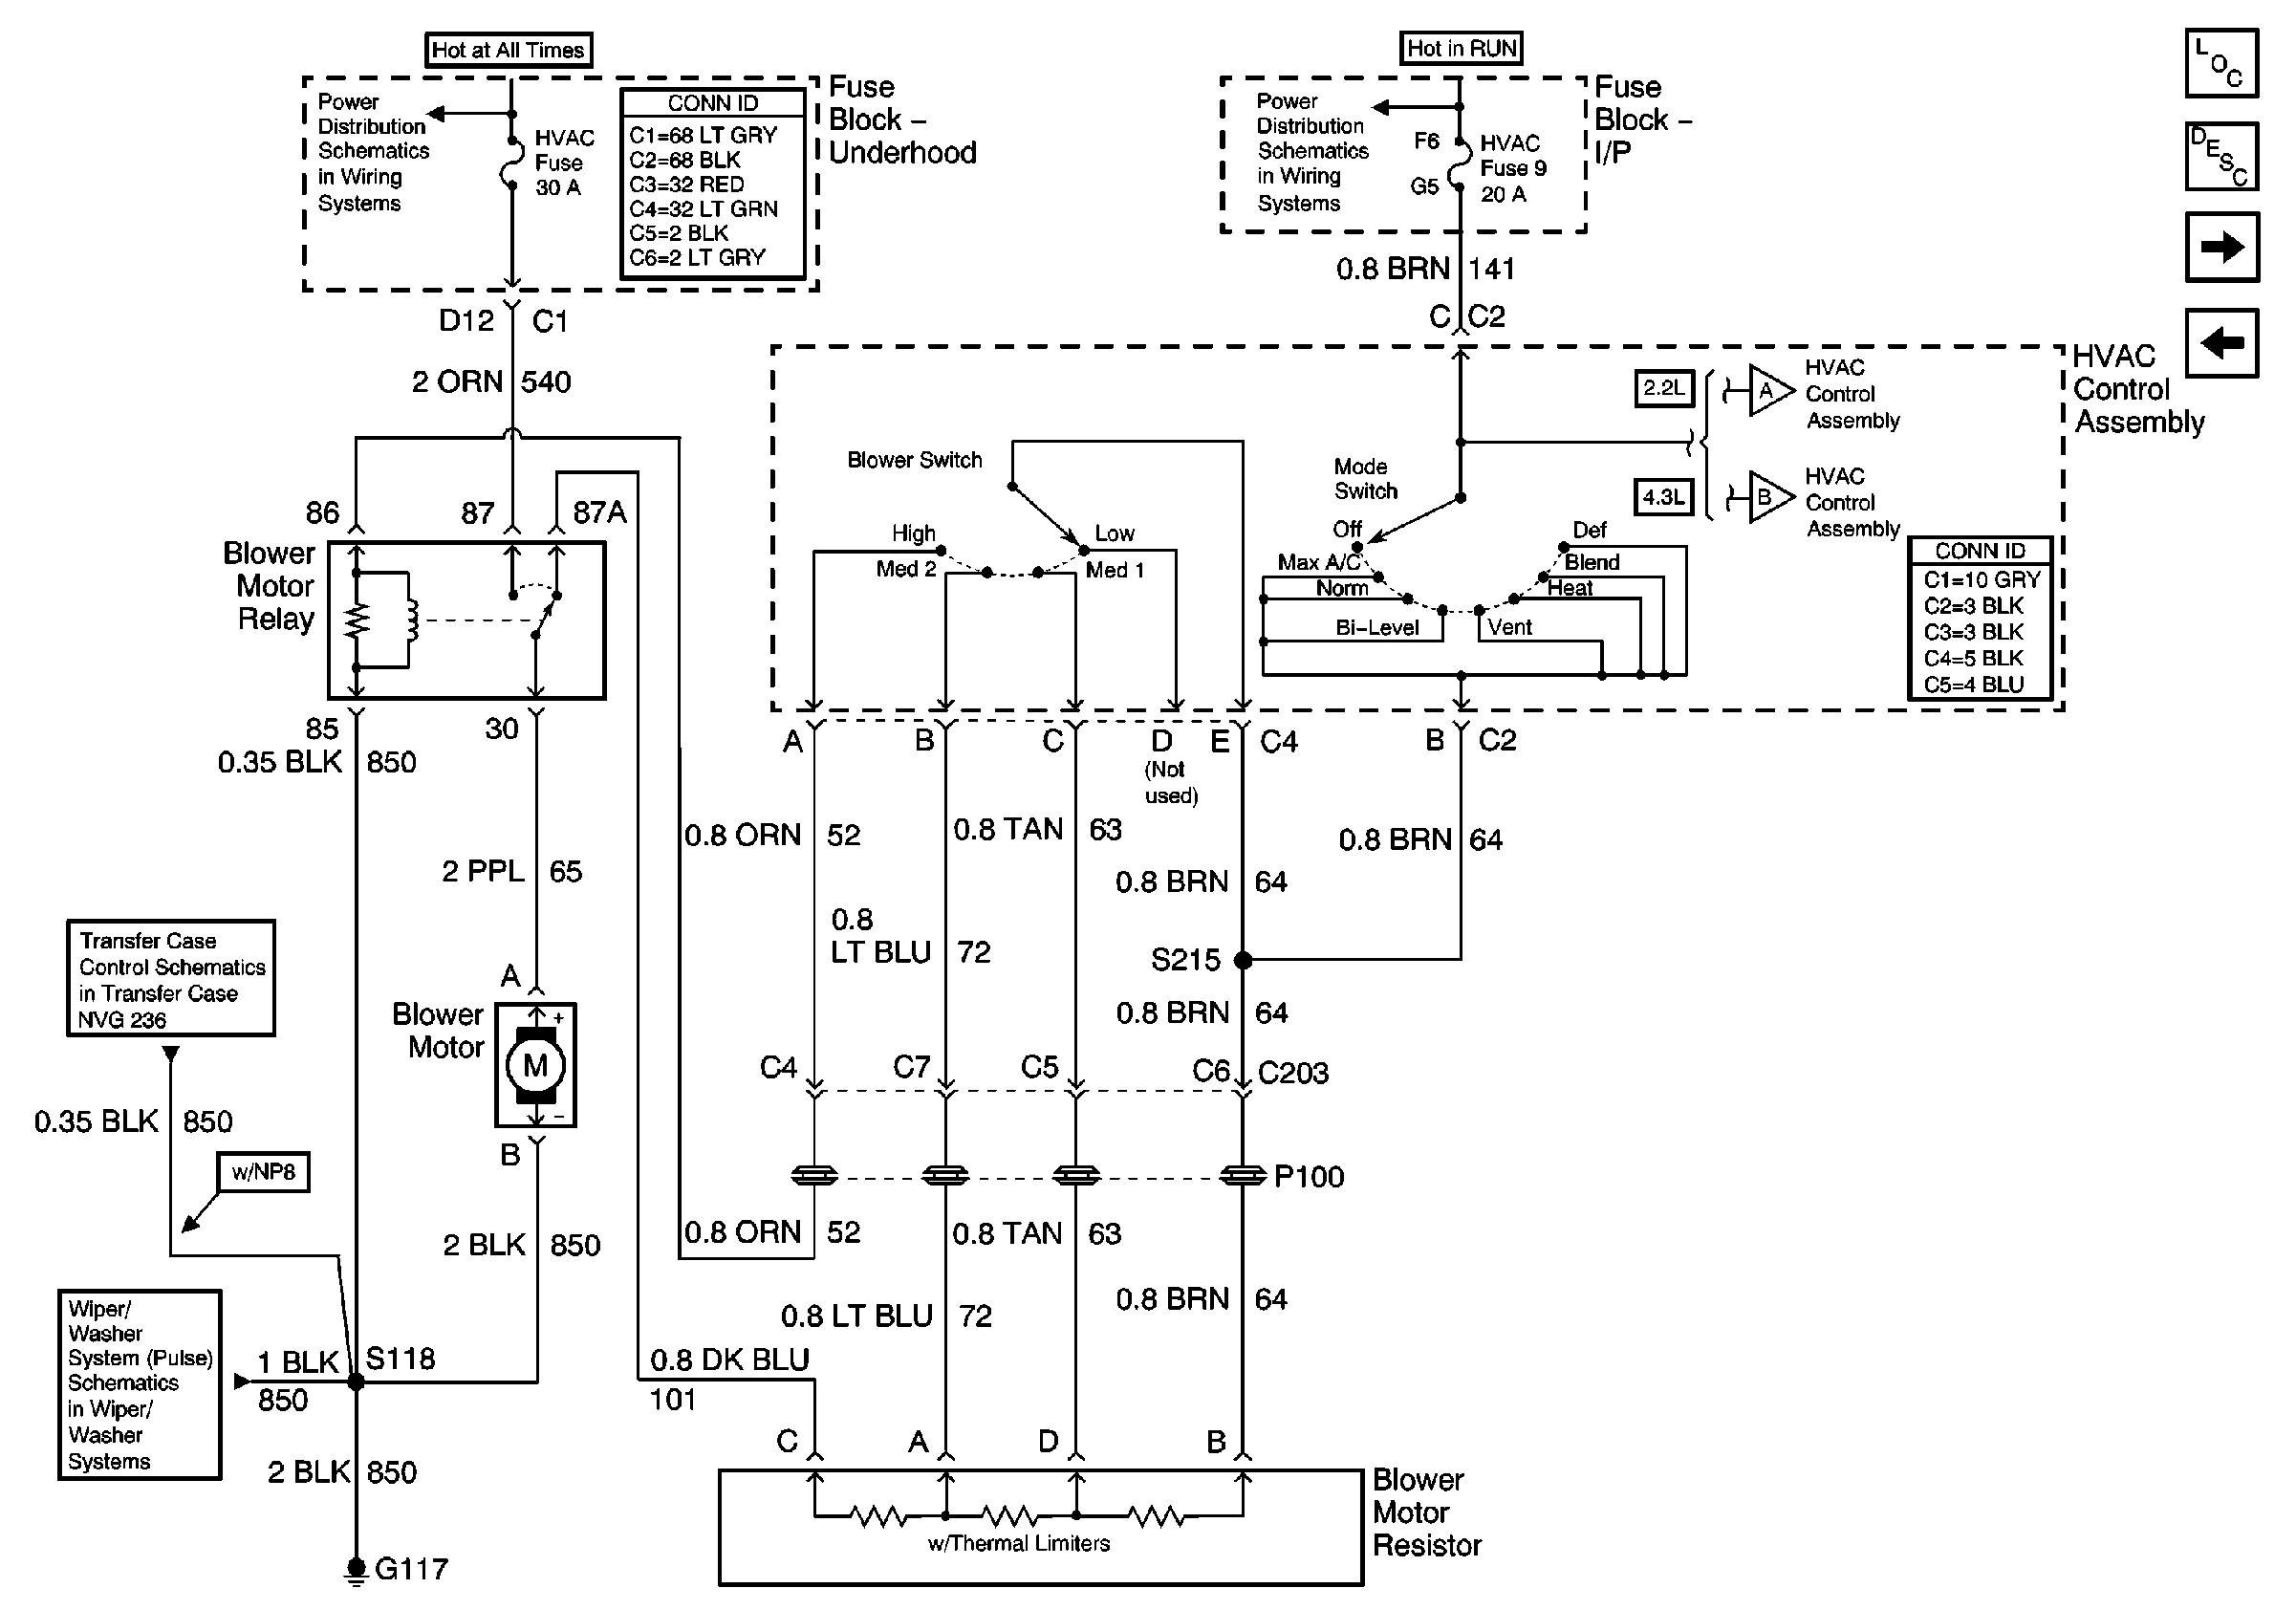 s10 blower motor wiring diagram Download-Motor Heater Wiring Diagram Best 95 S10 Motor Wiring Diagram Wiring Diagram 9-b